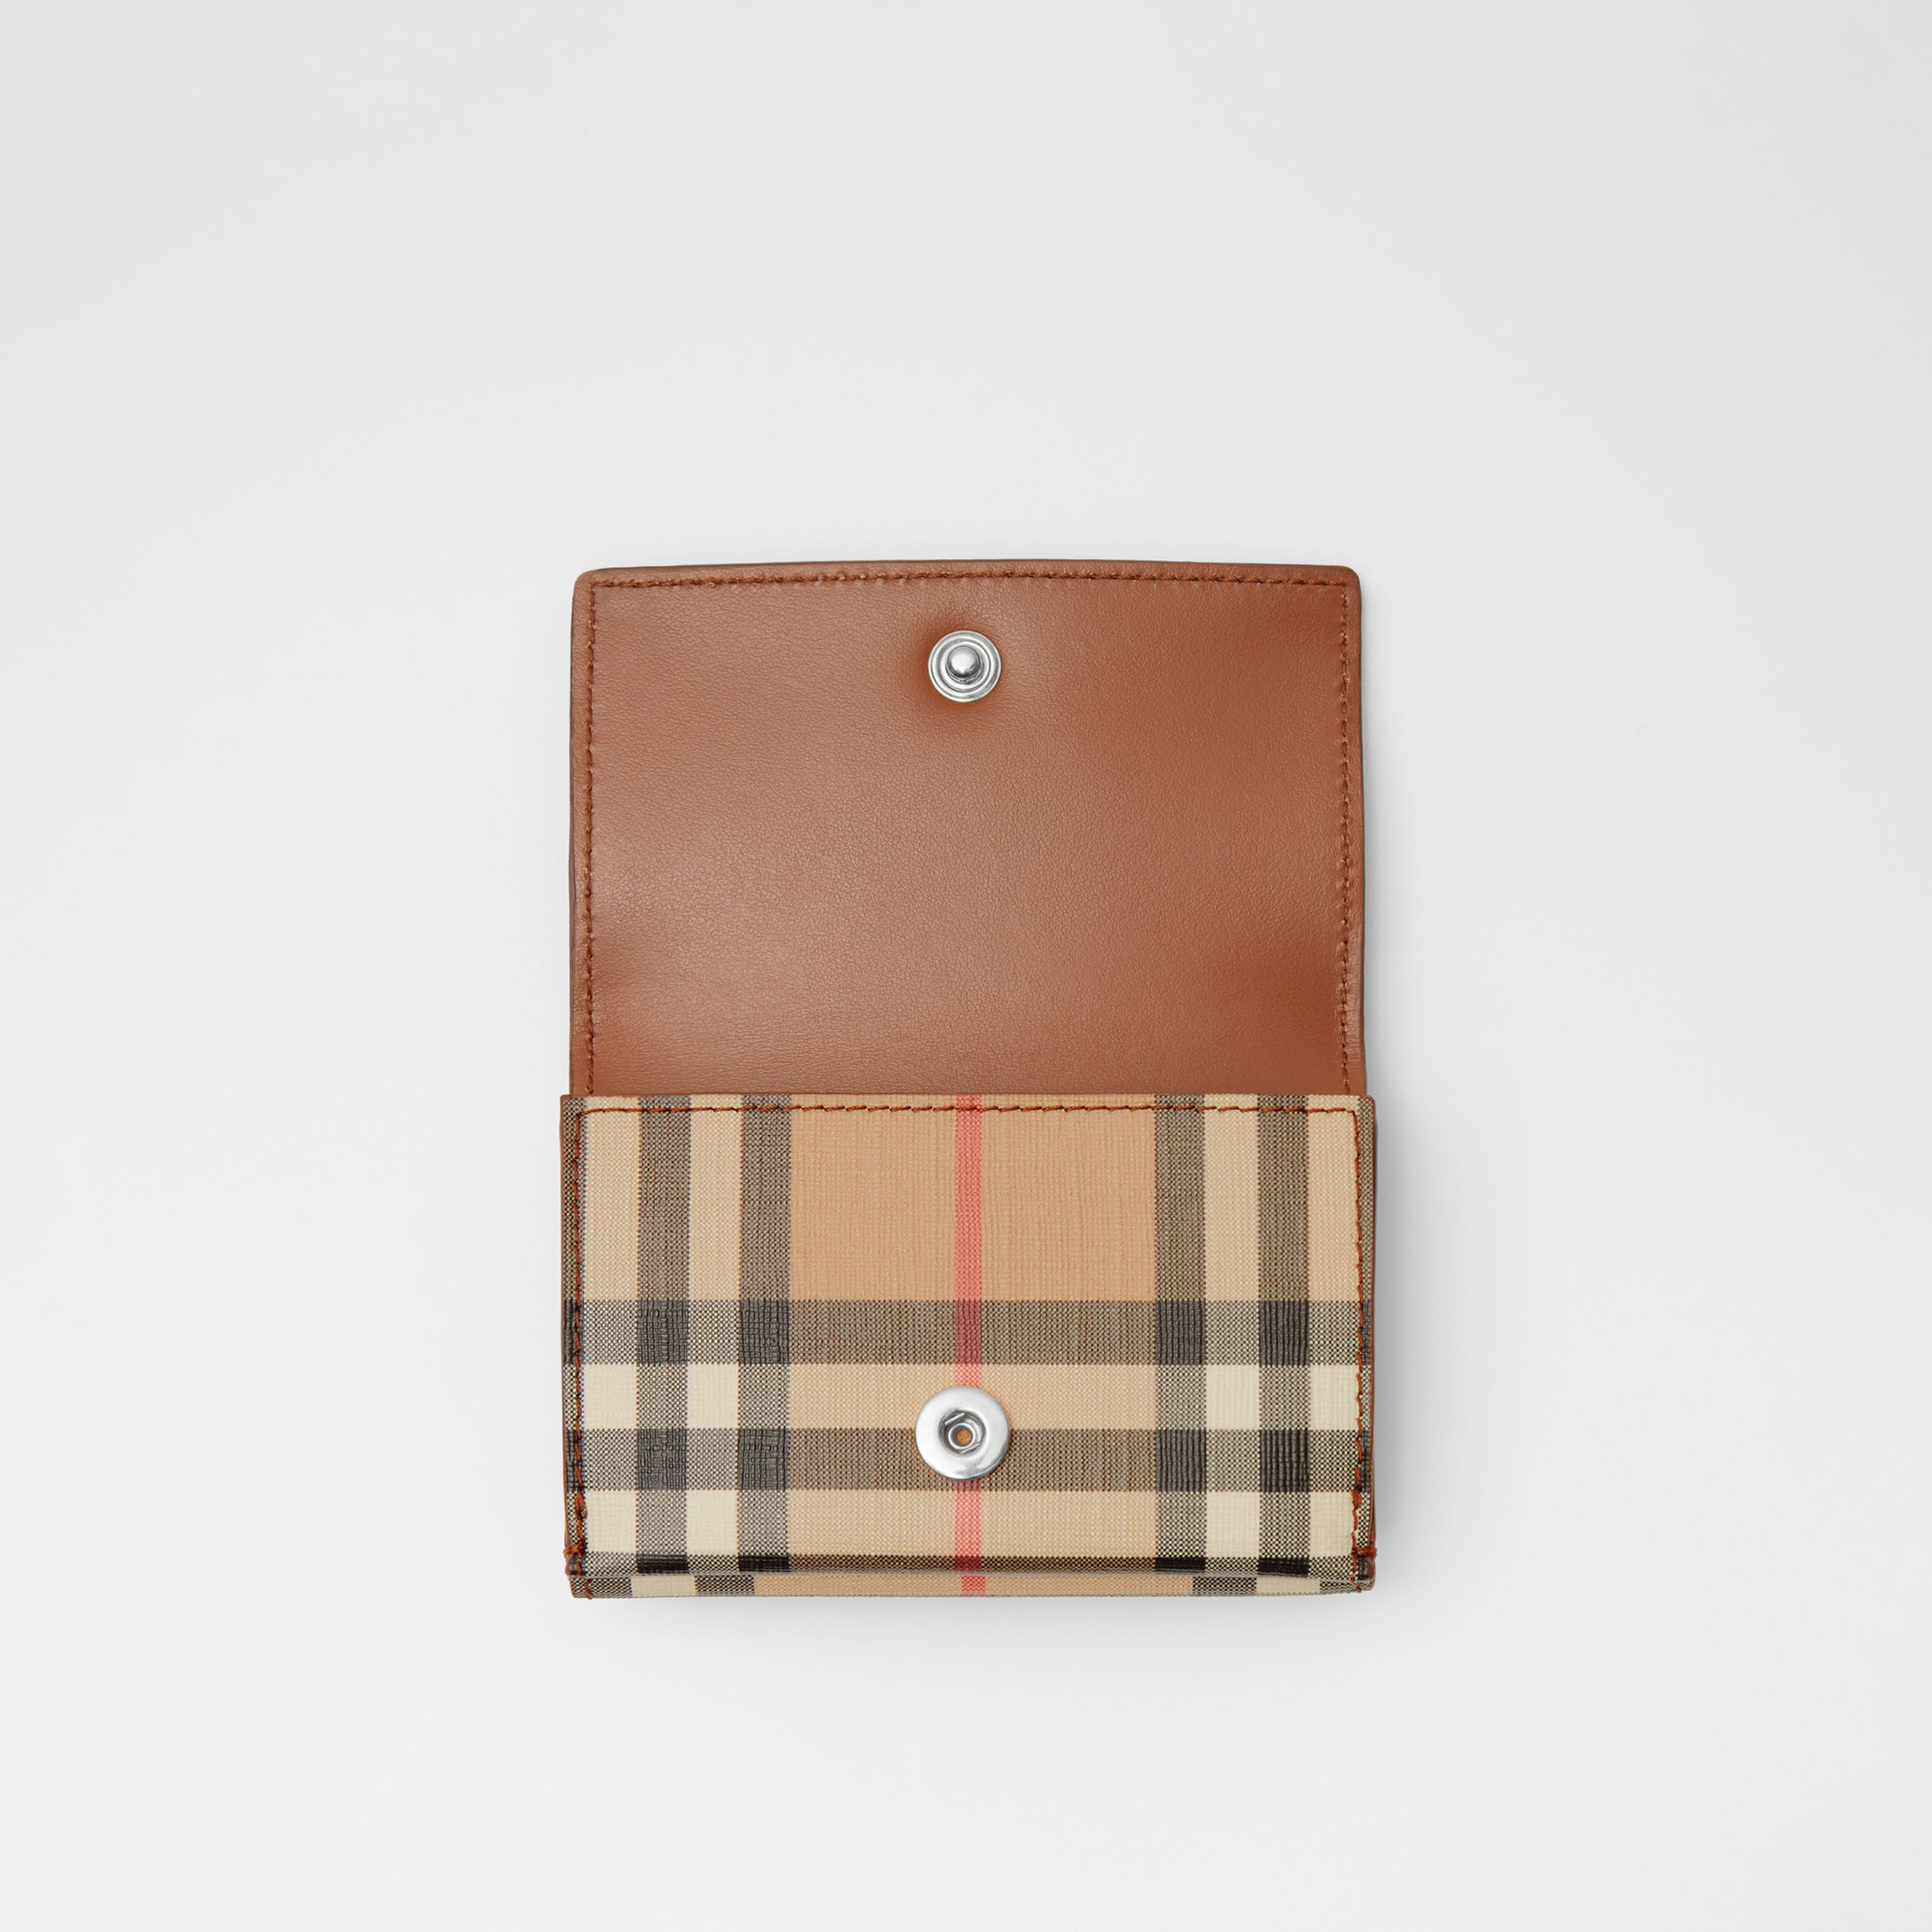 Small Vintage Check E-canvas Folding Wallet in Malt Brown - Women | Burberry Australia - 3